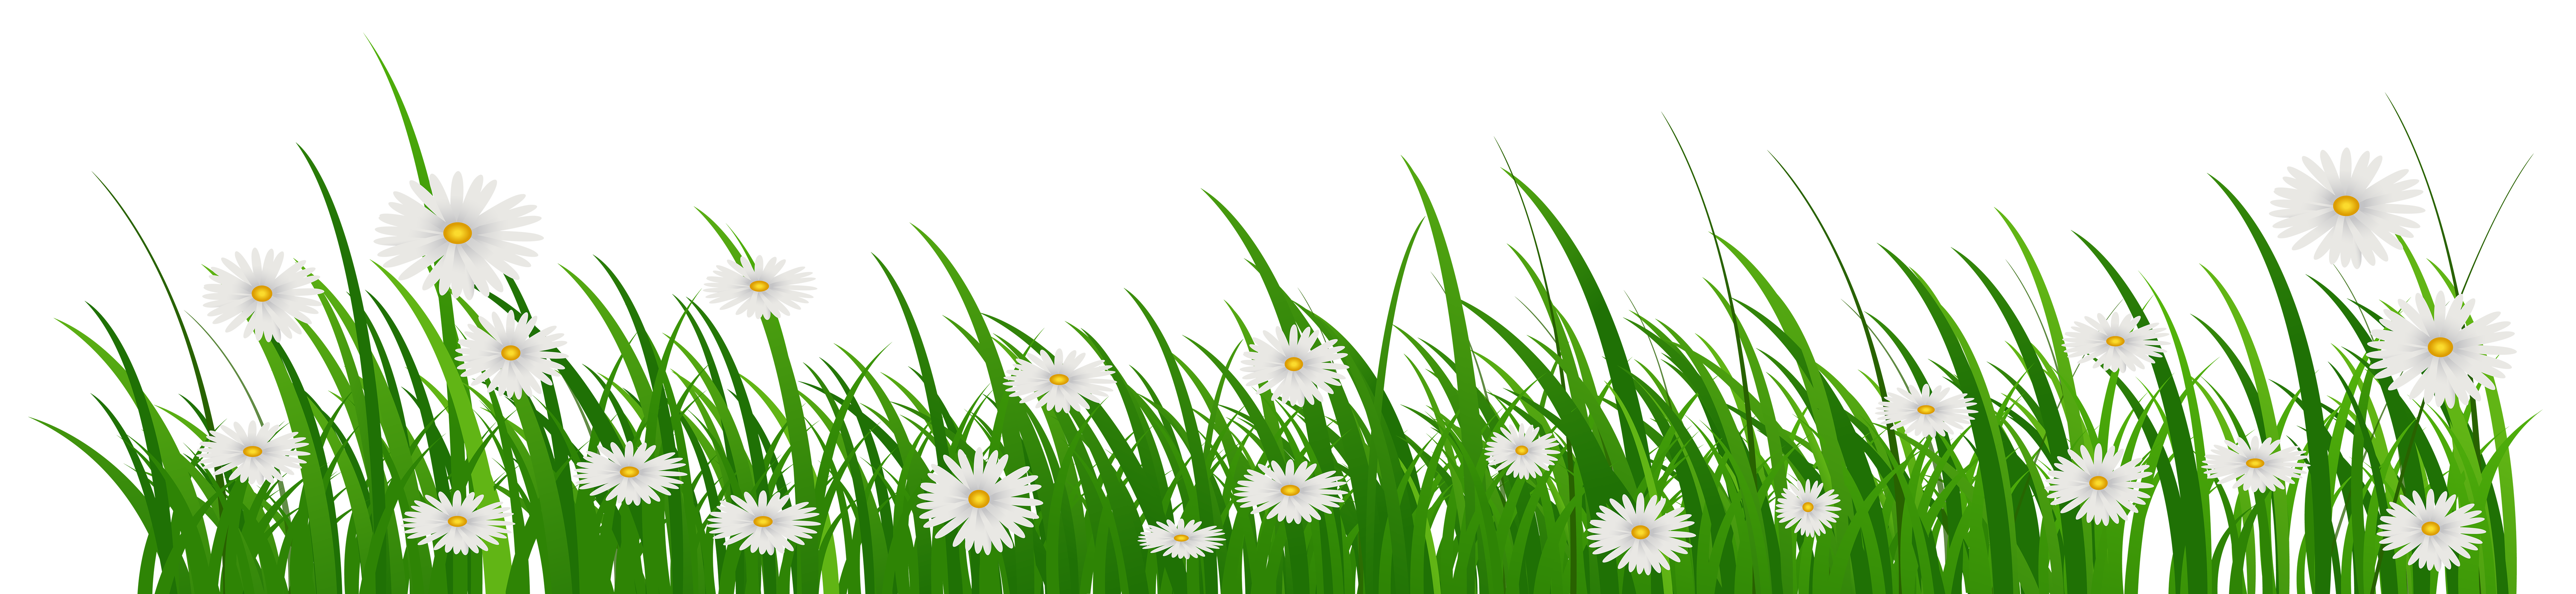 Grass with flower clipart banner freeuse Grass with Flowers PNG Clip Art Image | Gallery Yopriceville - High ... banner freeuse